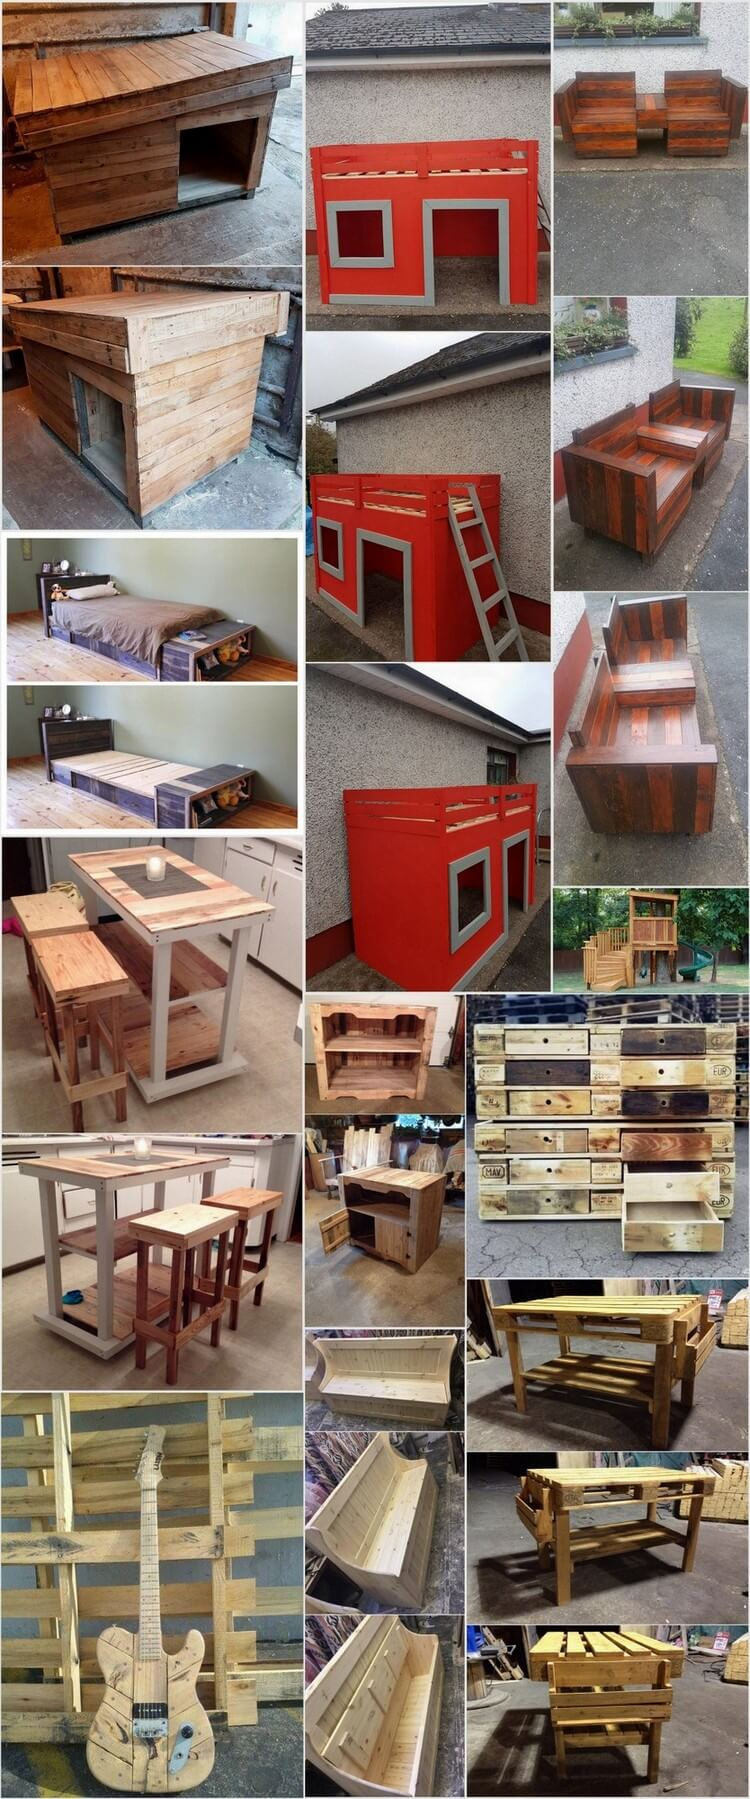 Splendid Ideas with Used Shipping Pallets